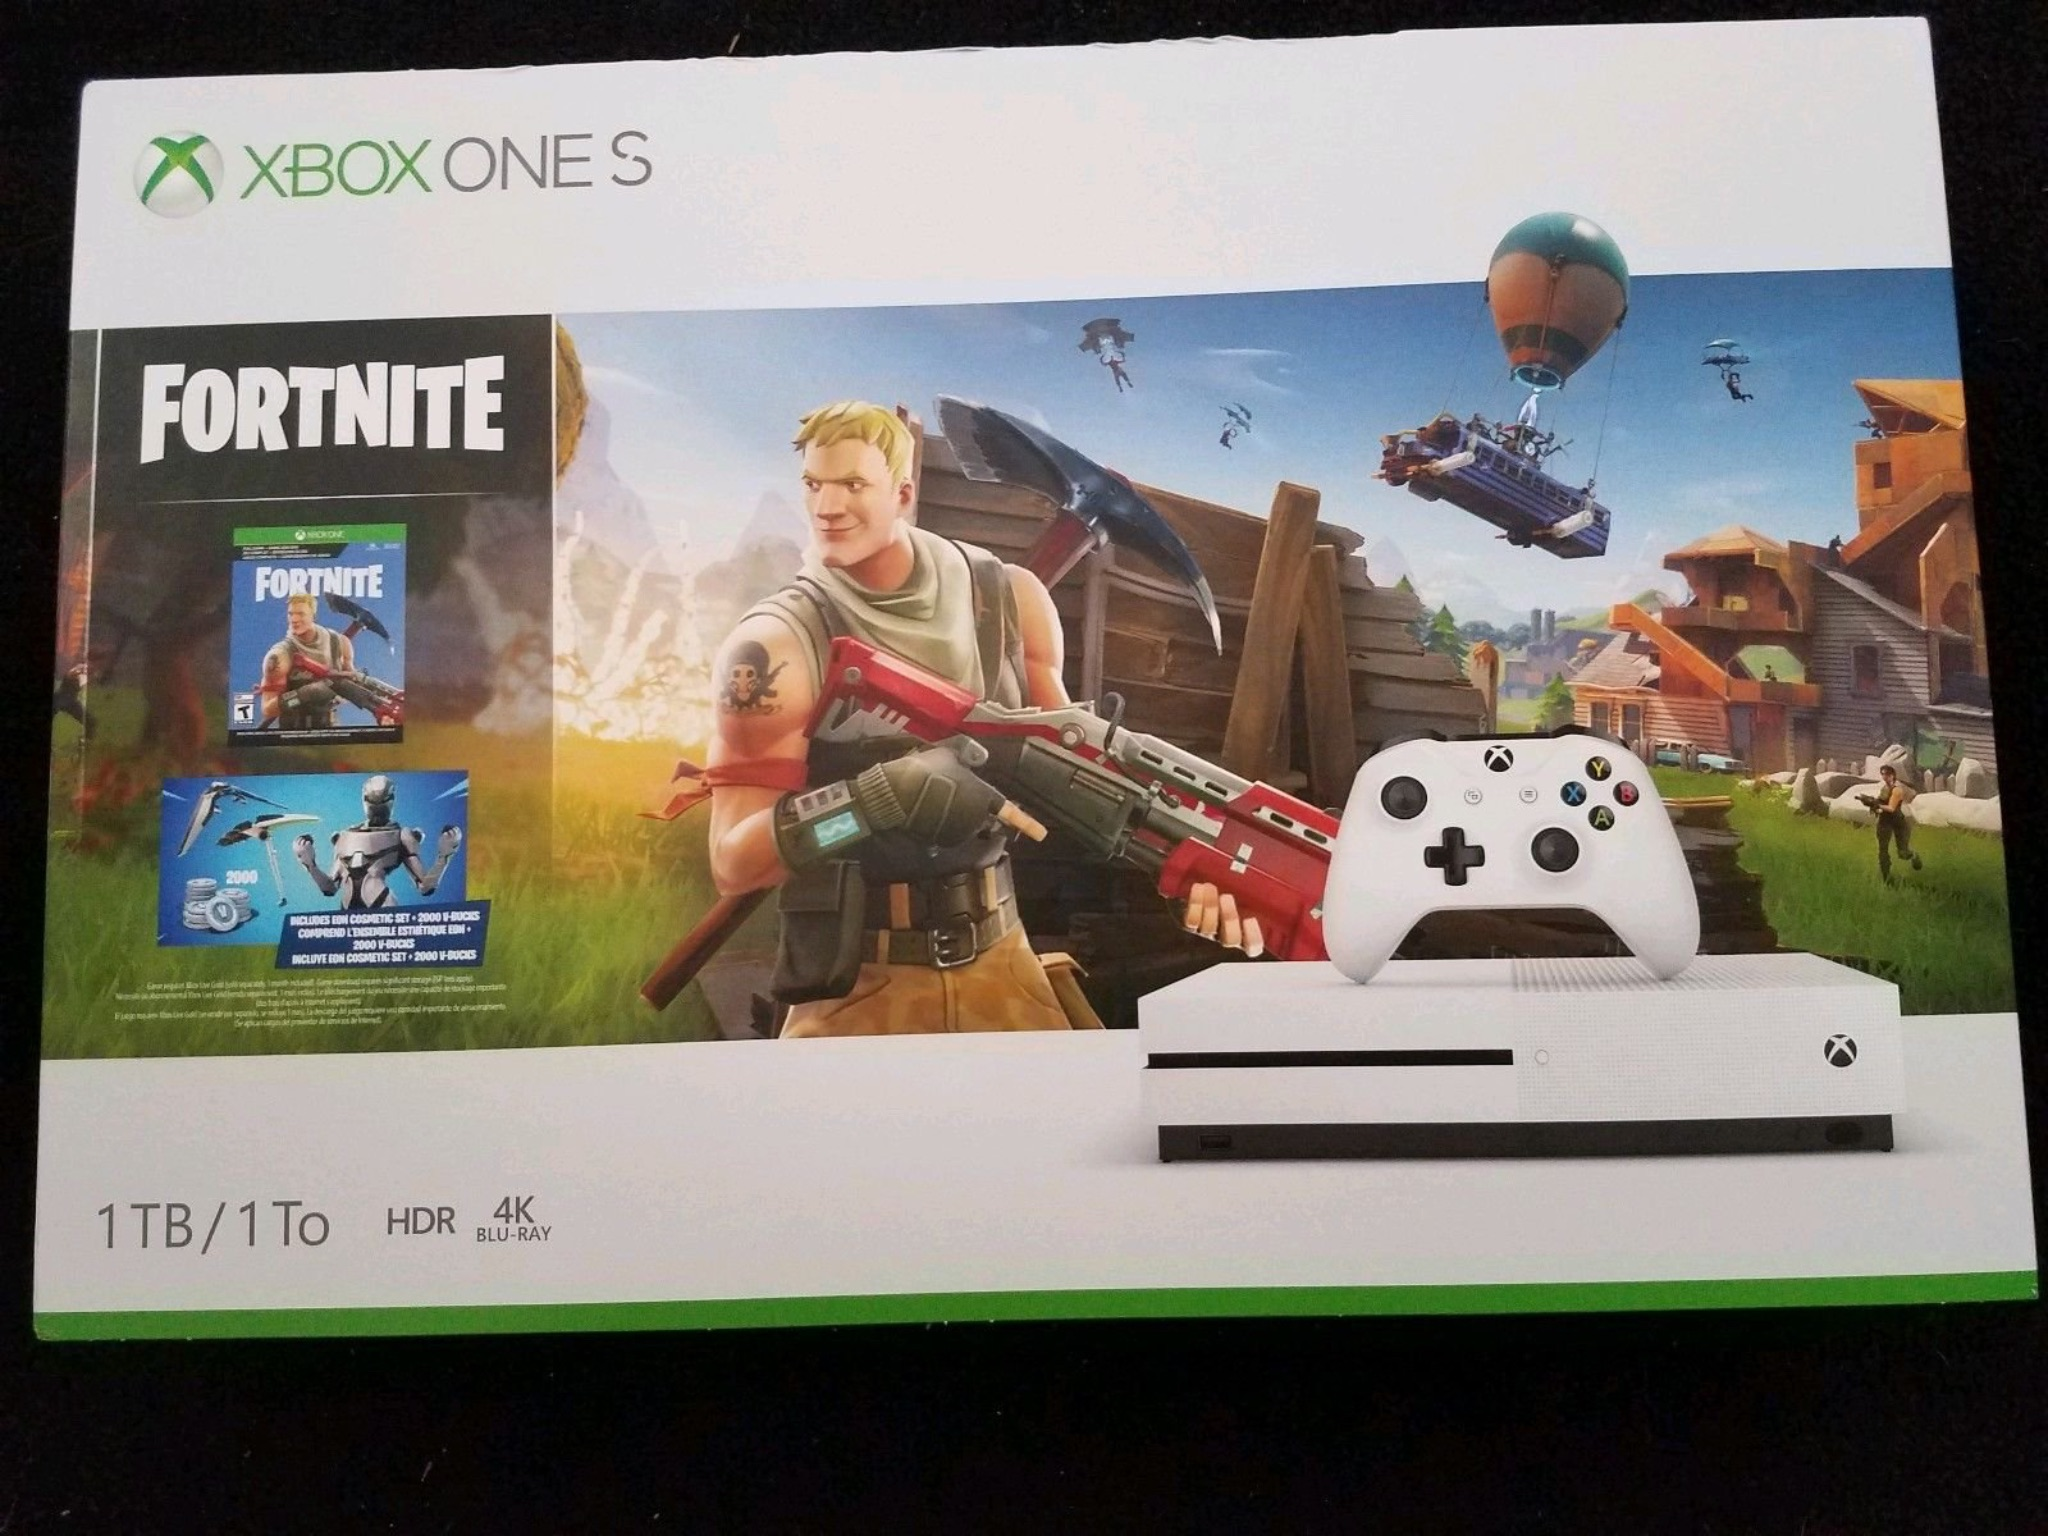 eon xbox one s bundle - how to redeem fortnite code on xbox one